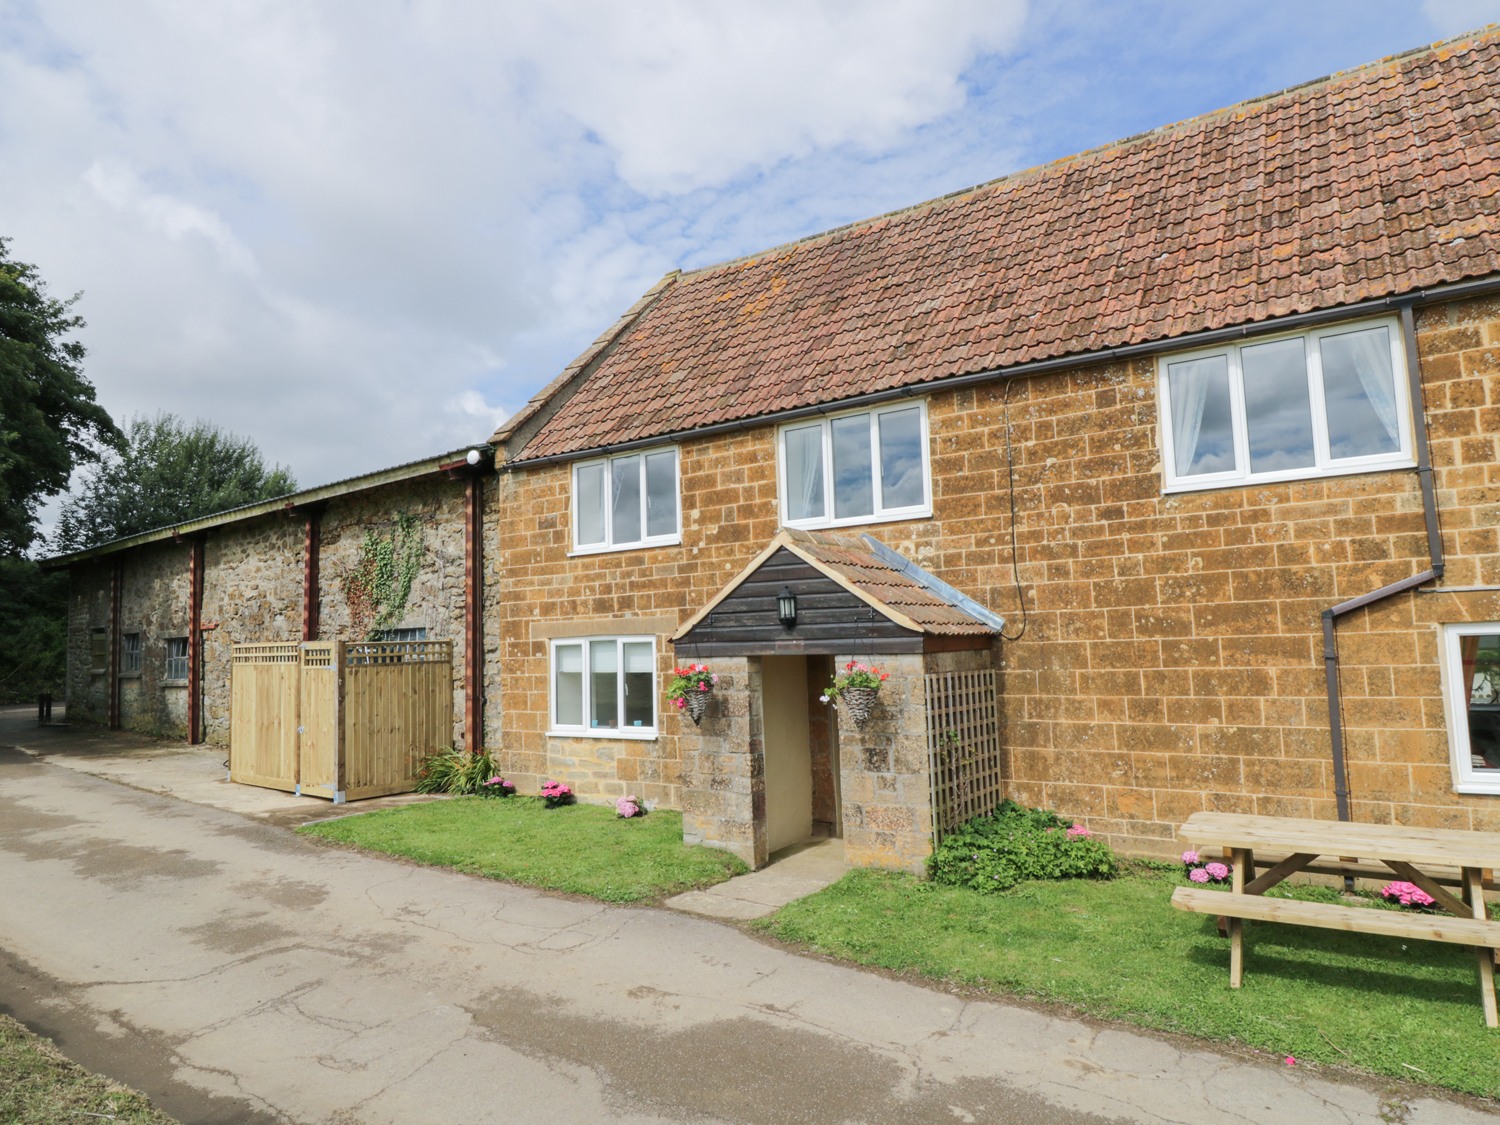 4 bedroom Cottage for rent in Crewkerne